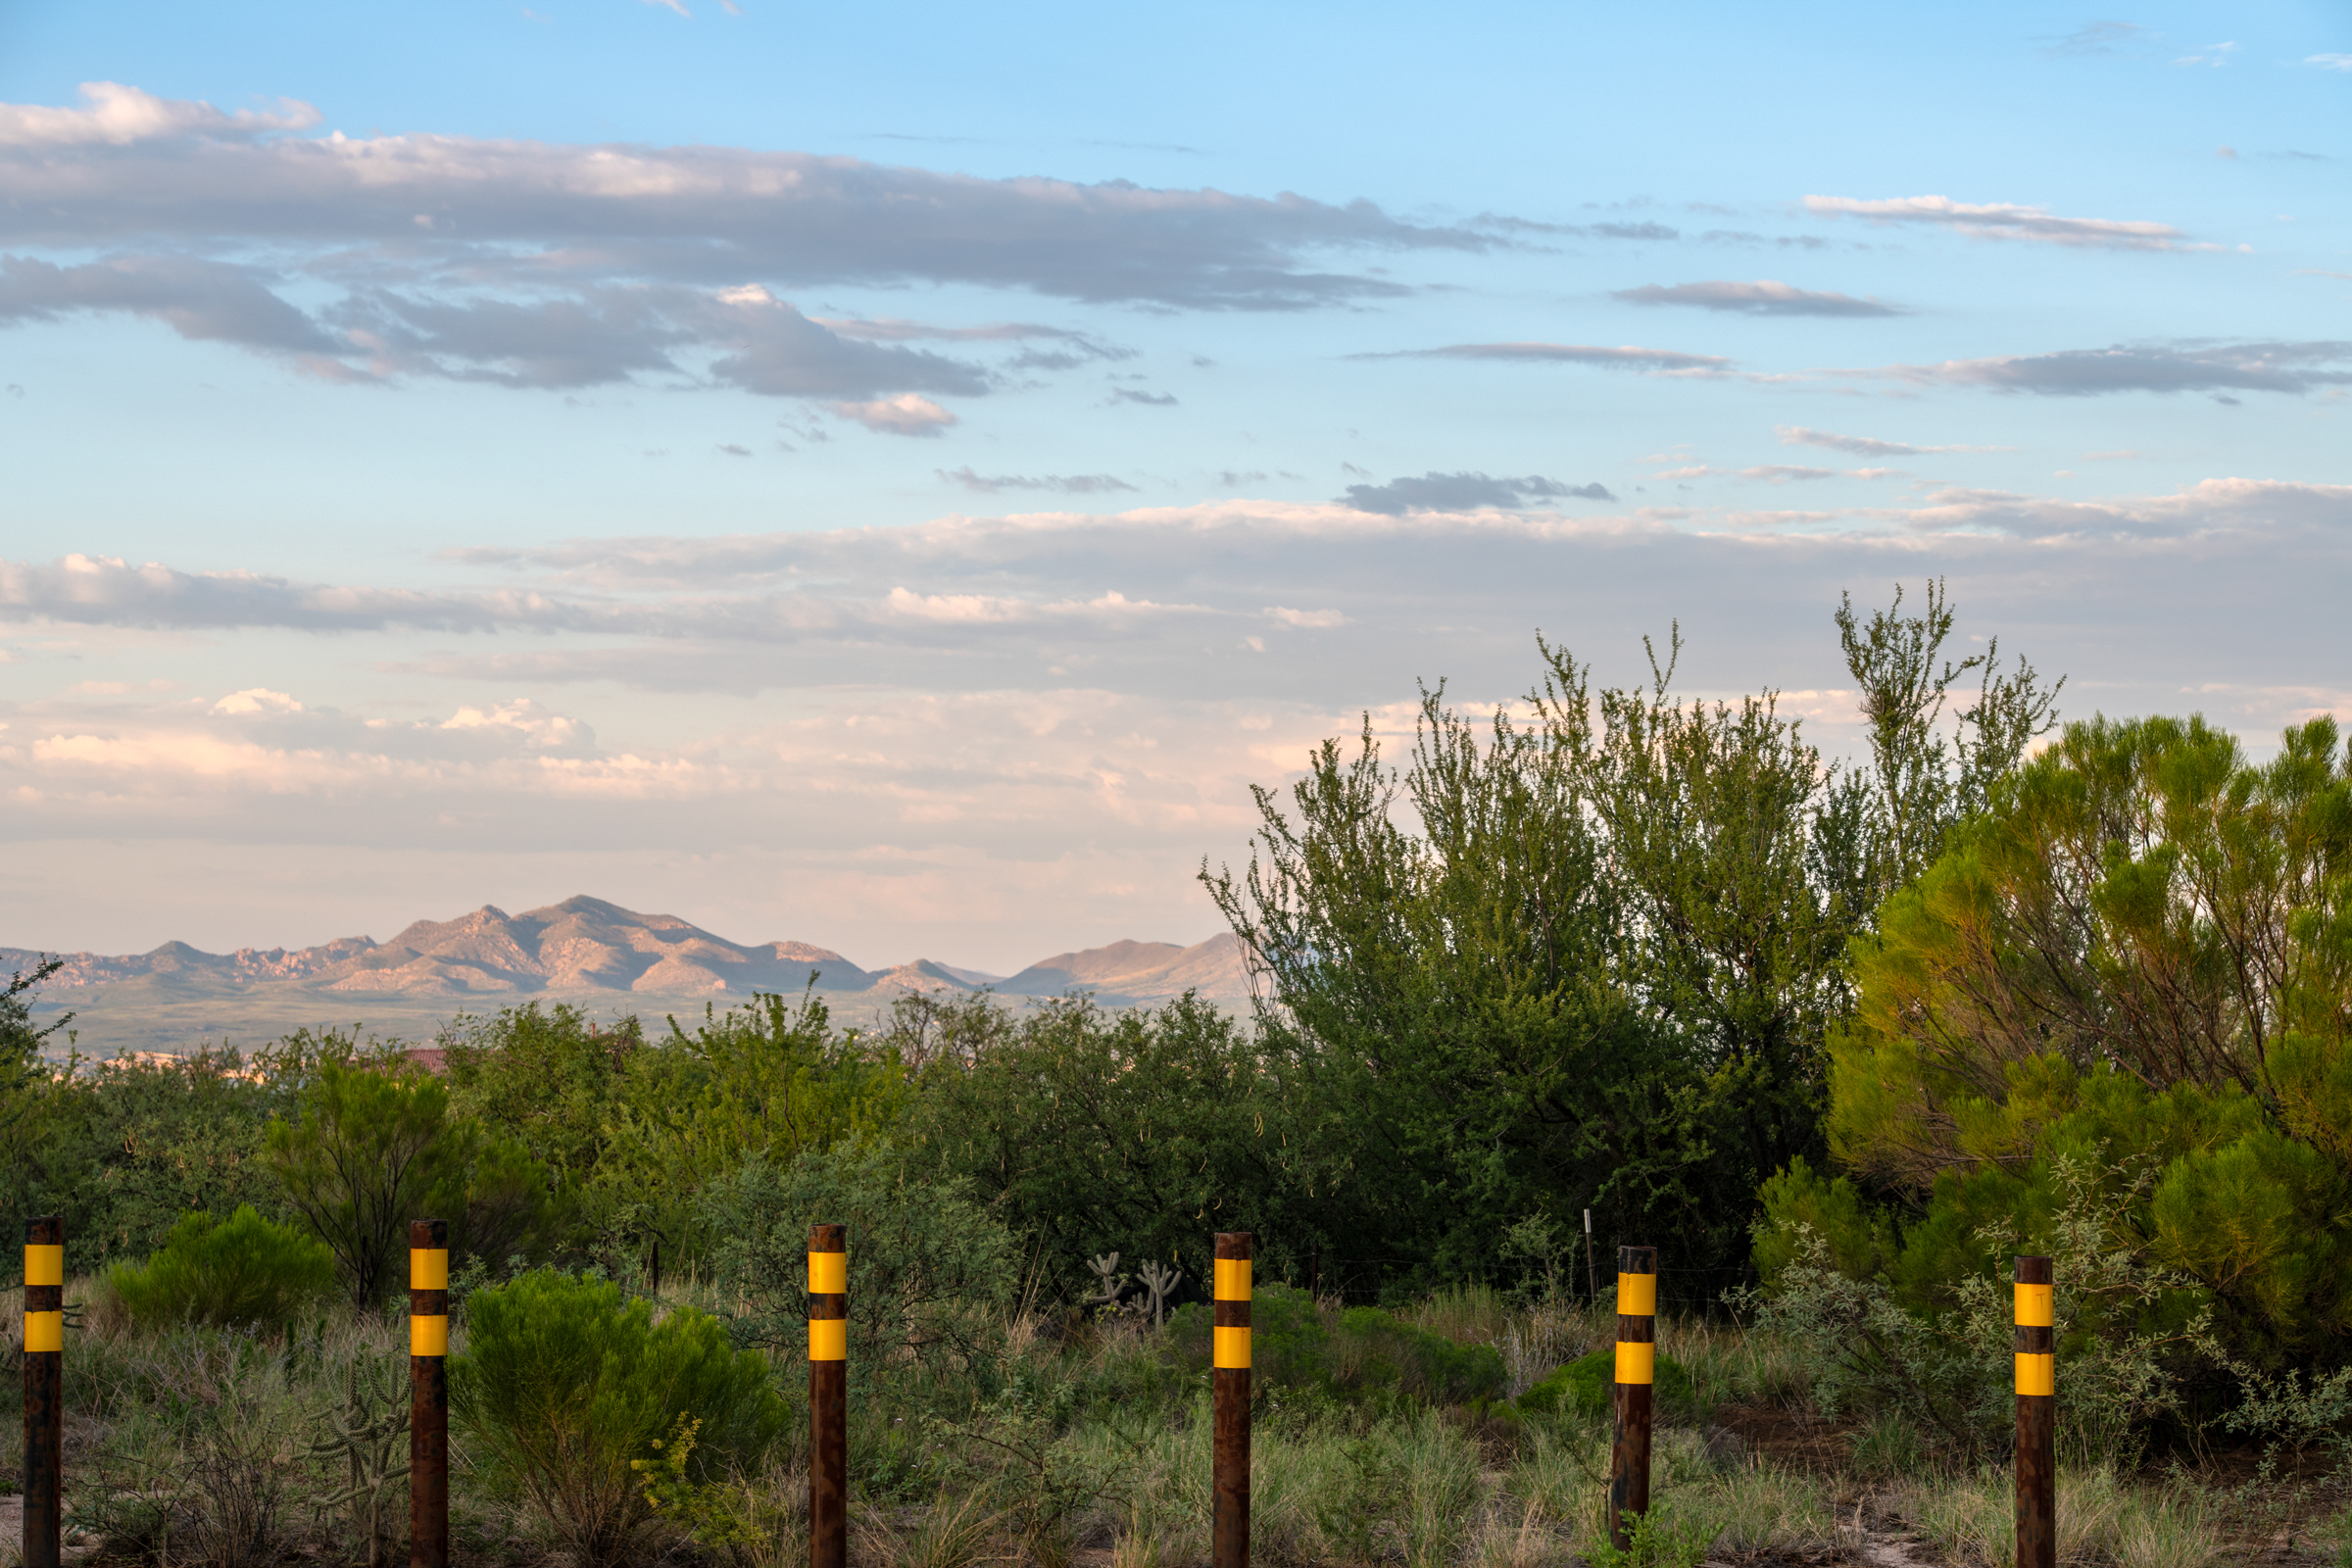 The Villages at Vignetto development site in Benson, Arizona, in August 2020. Ash Ponders